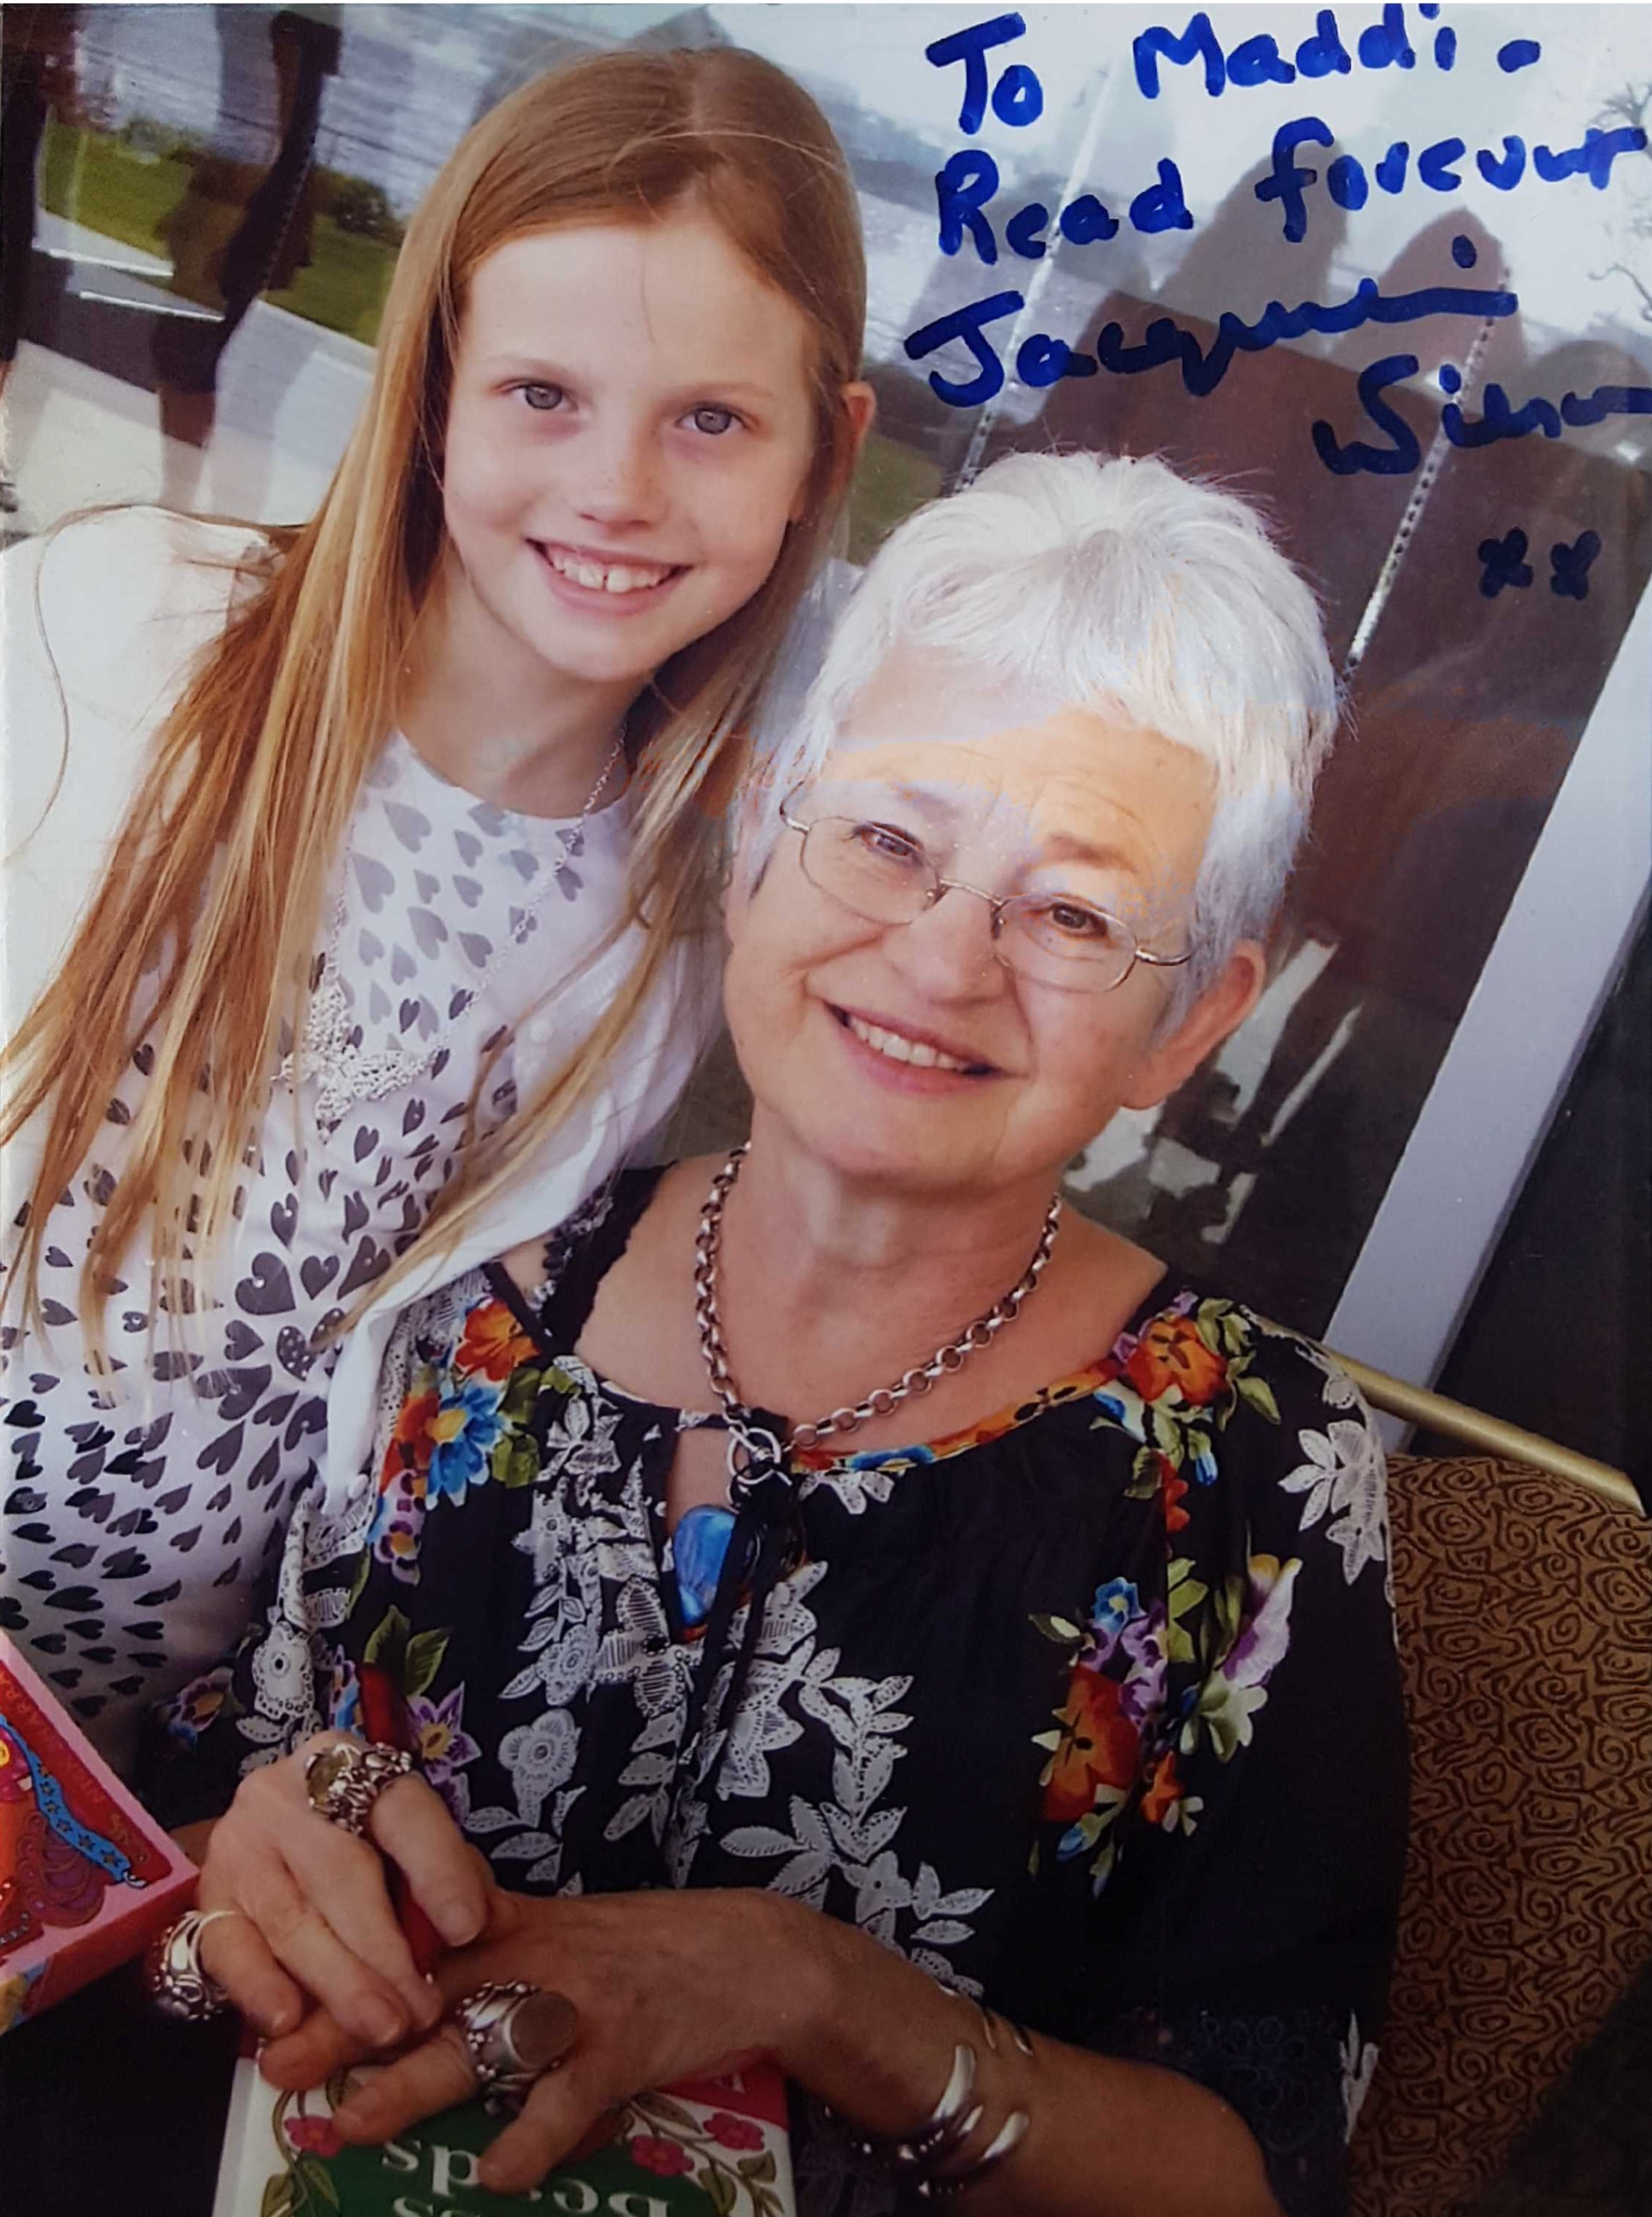 Jacqueline Wilson - Jacqueline is a such a lovely lady, I was living in Bahrain and just had to visit Dubai and the Emirates Literary Festival and was so very lucky to meet her in person. More about Jacqueline HERE